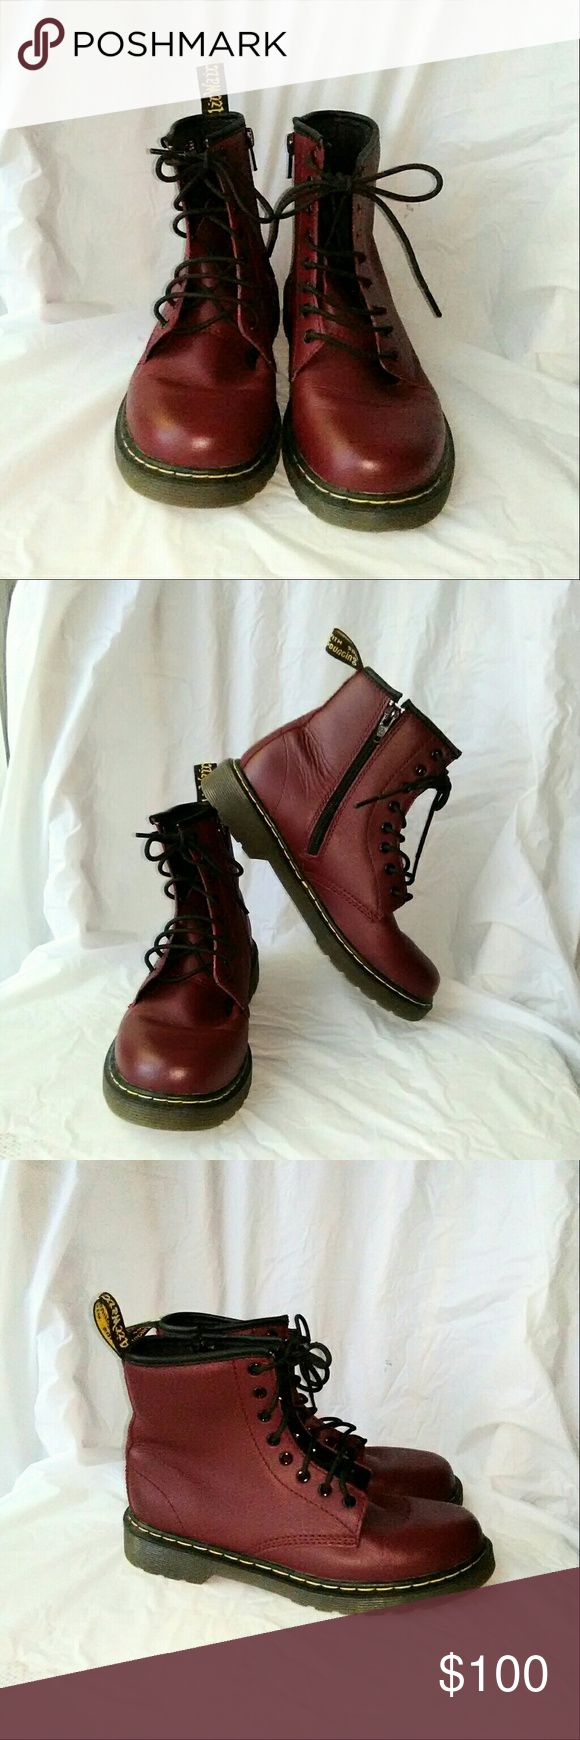 Dr. Marten Dark Red Delaney Boots nwot Red ankle boots with 8 eyelets and inside zipper. Boots are brand new without tags and never worn. Dr. Martens Shoes Ankle Boots & Booties